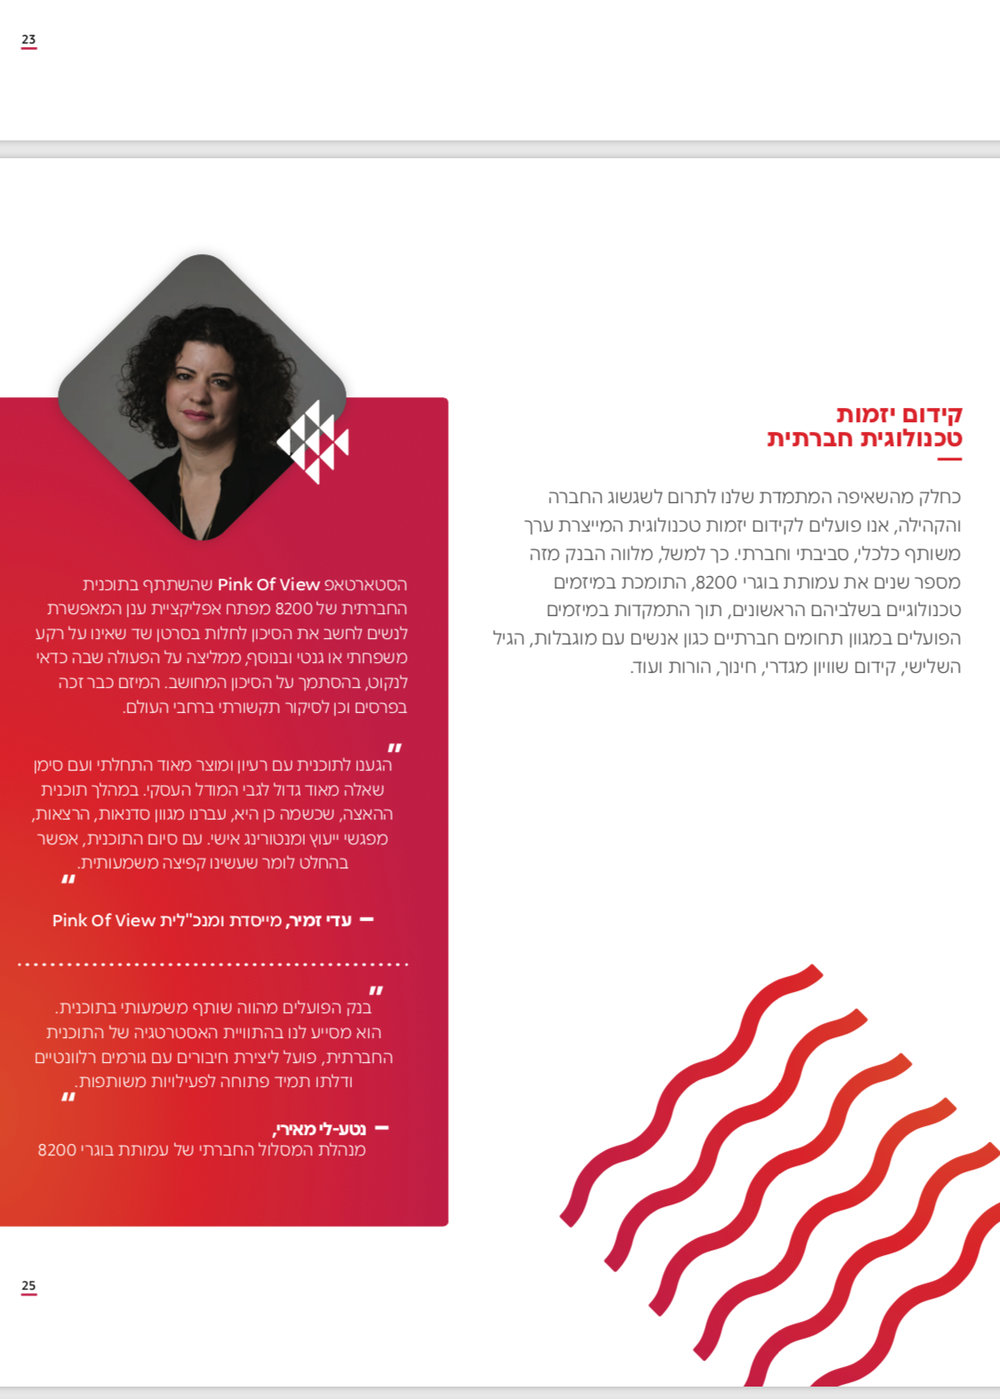 Pink Of View's activity is included as part of Bank Hapoalim's social responsibility annual report. -